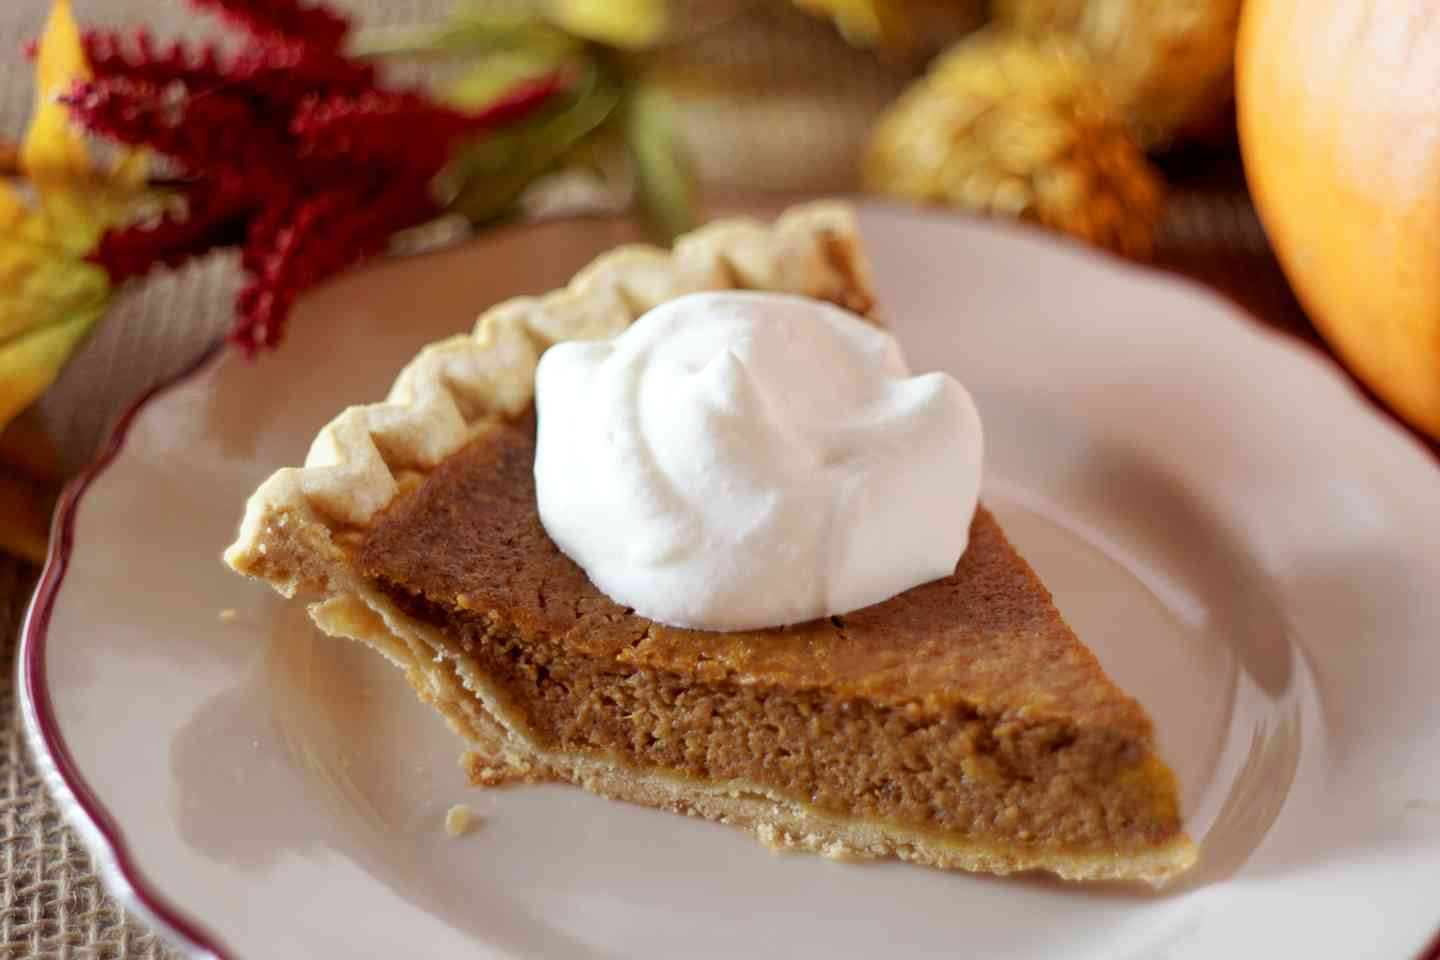 Pumpkin or Apple Pie with Whipped Cream